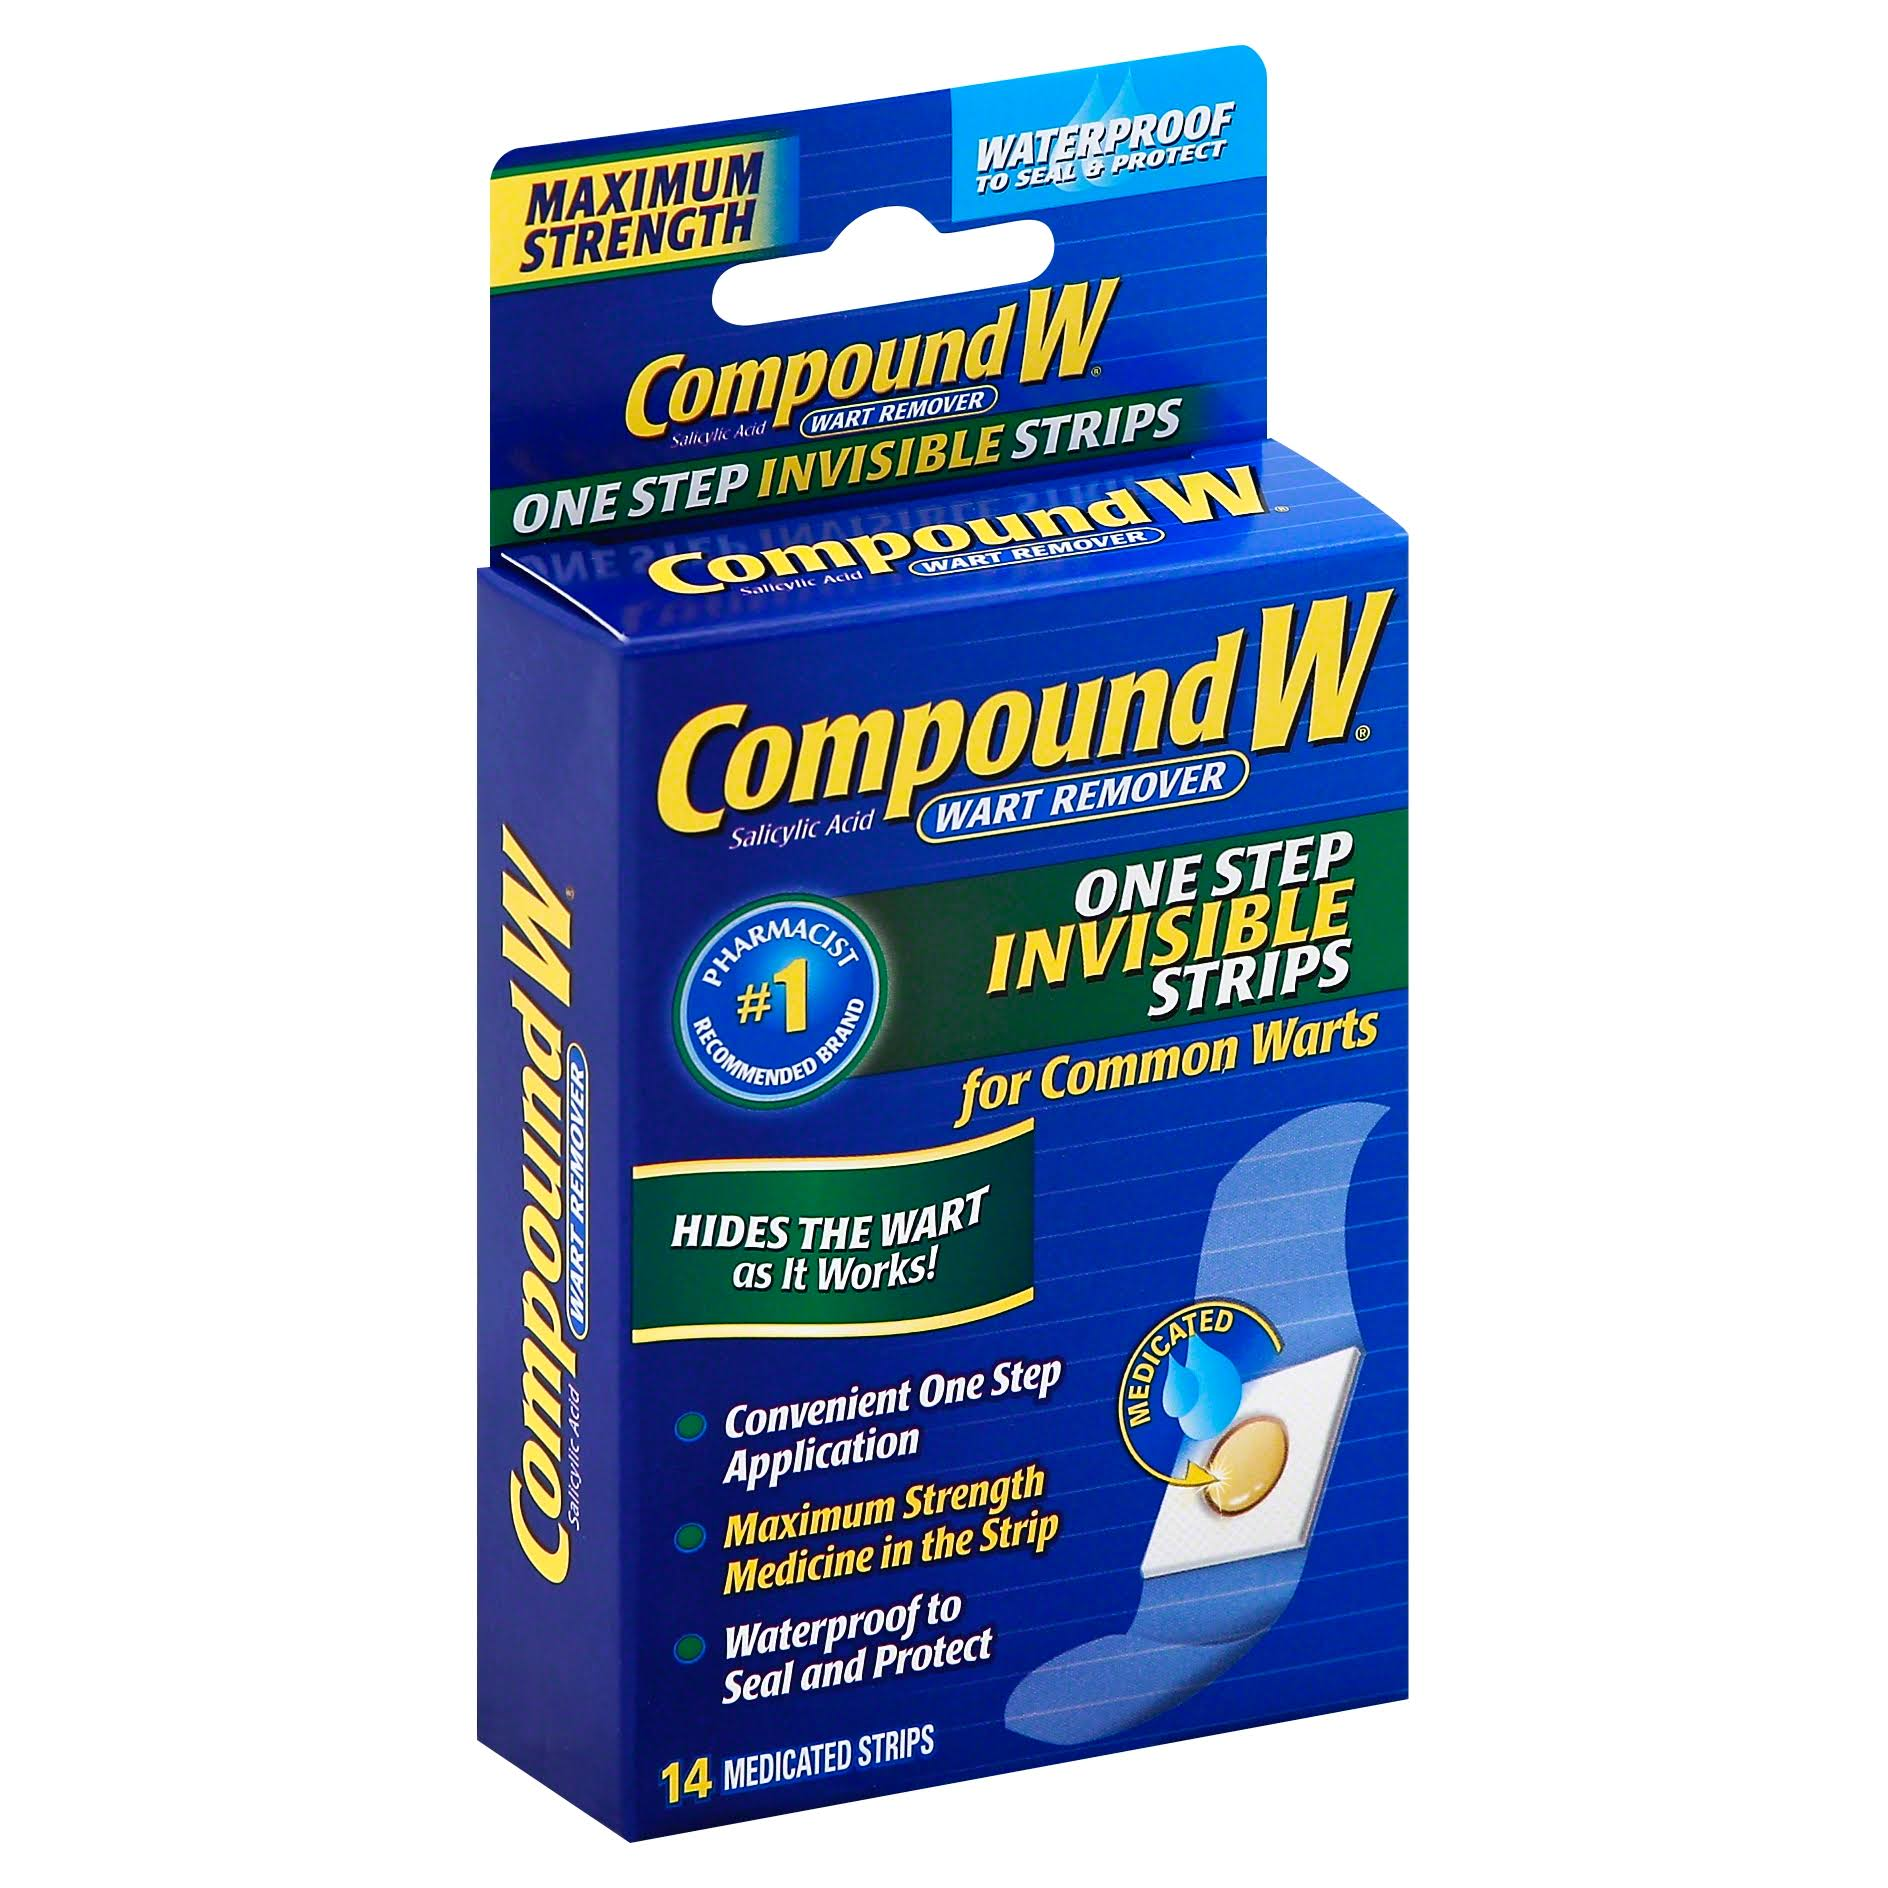 Compound W One Step Invisible Strips Wart Remover - 14 Medicated Strips